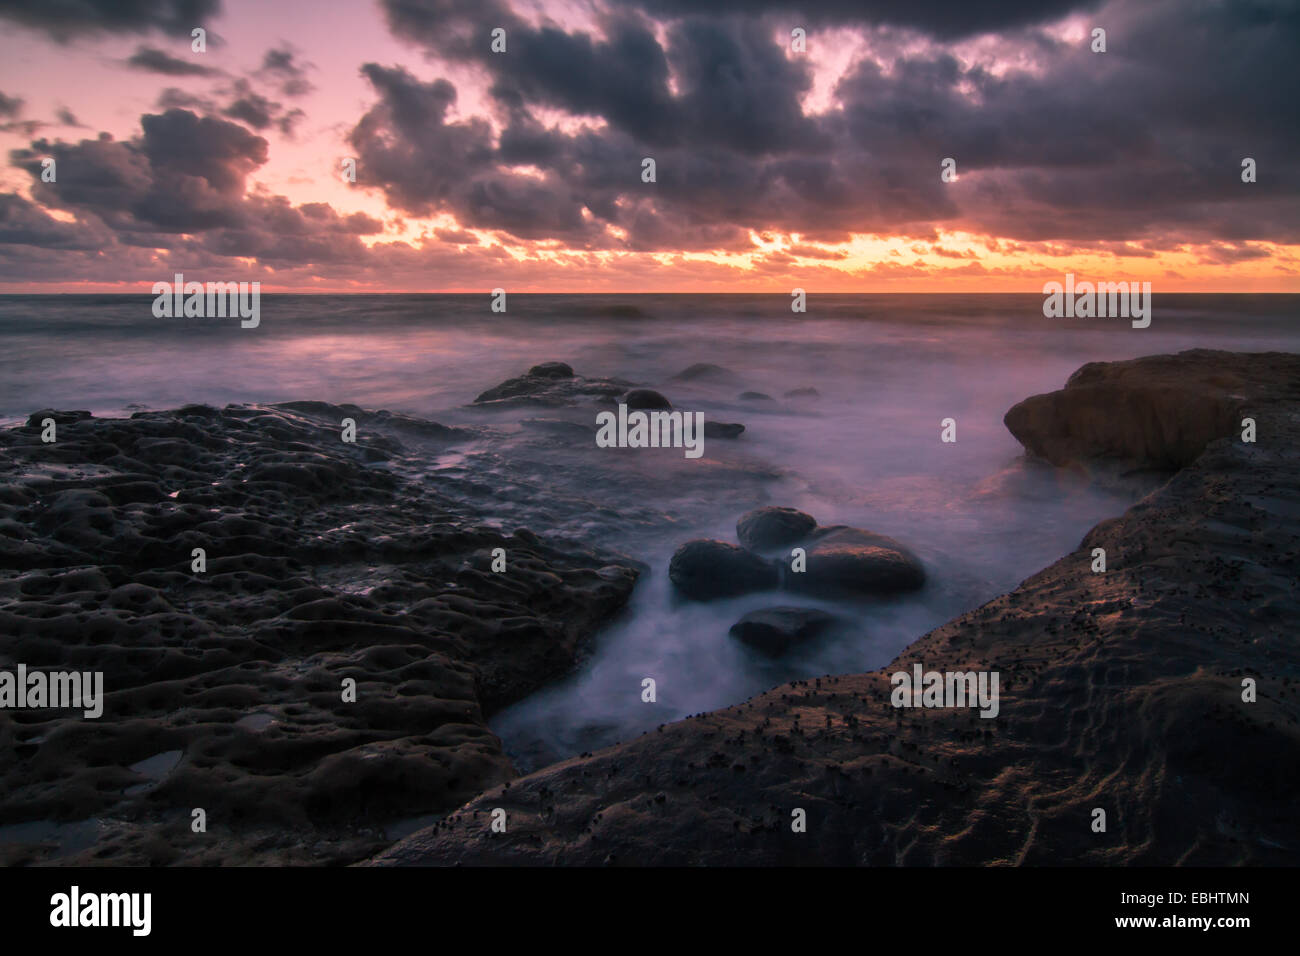 Surreal surf and rocks caught in a long exposure at sunset near San Diego, California Stock Photo